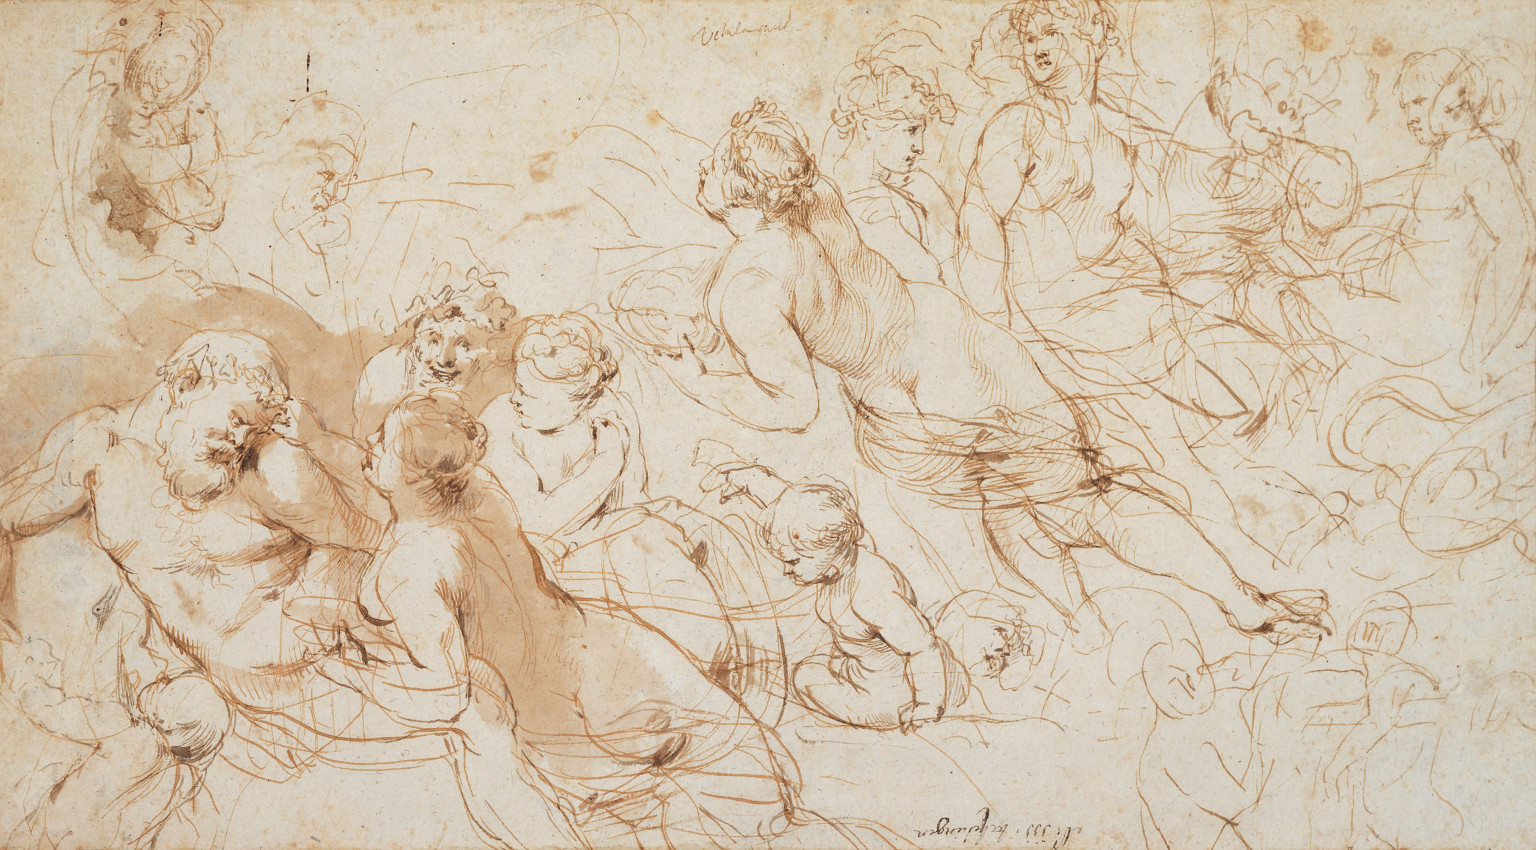 Peter Paul Rubens, 'Recto: Silenus and Aegle with other studies. Verso: Figure studies' (c. 1612-15)